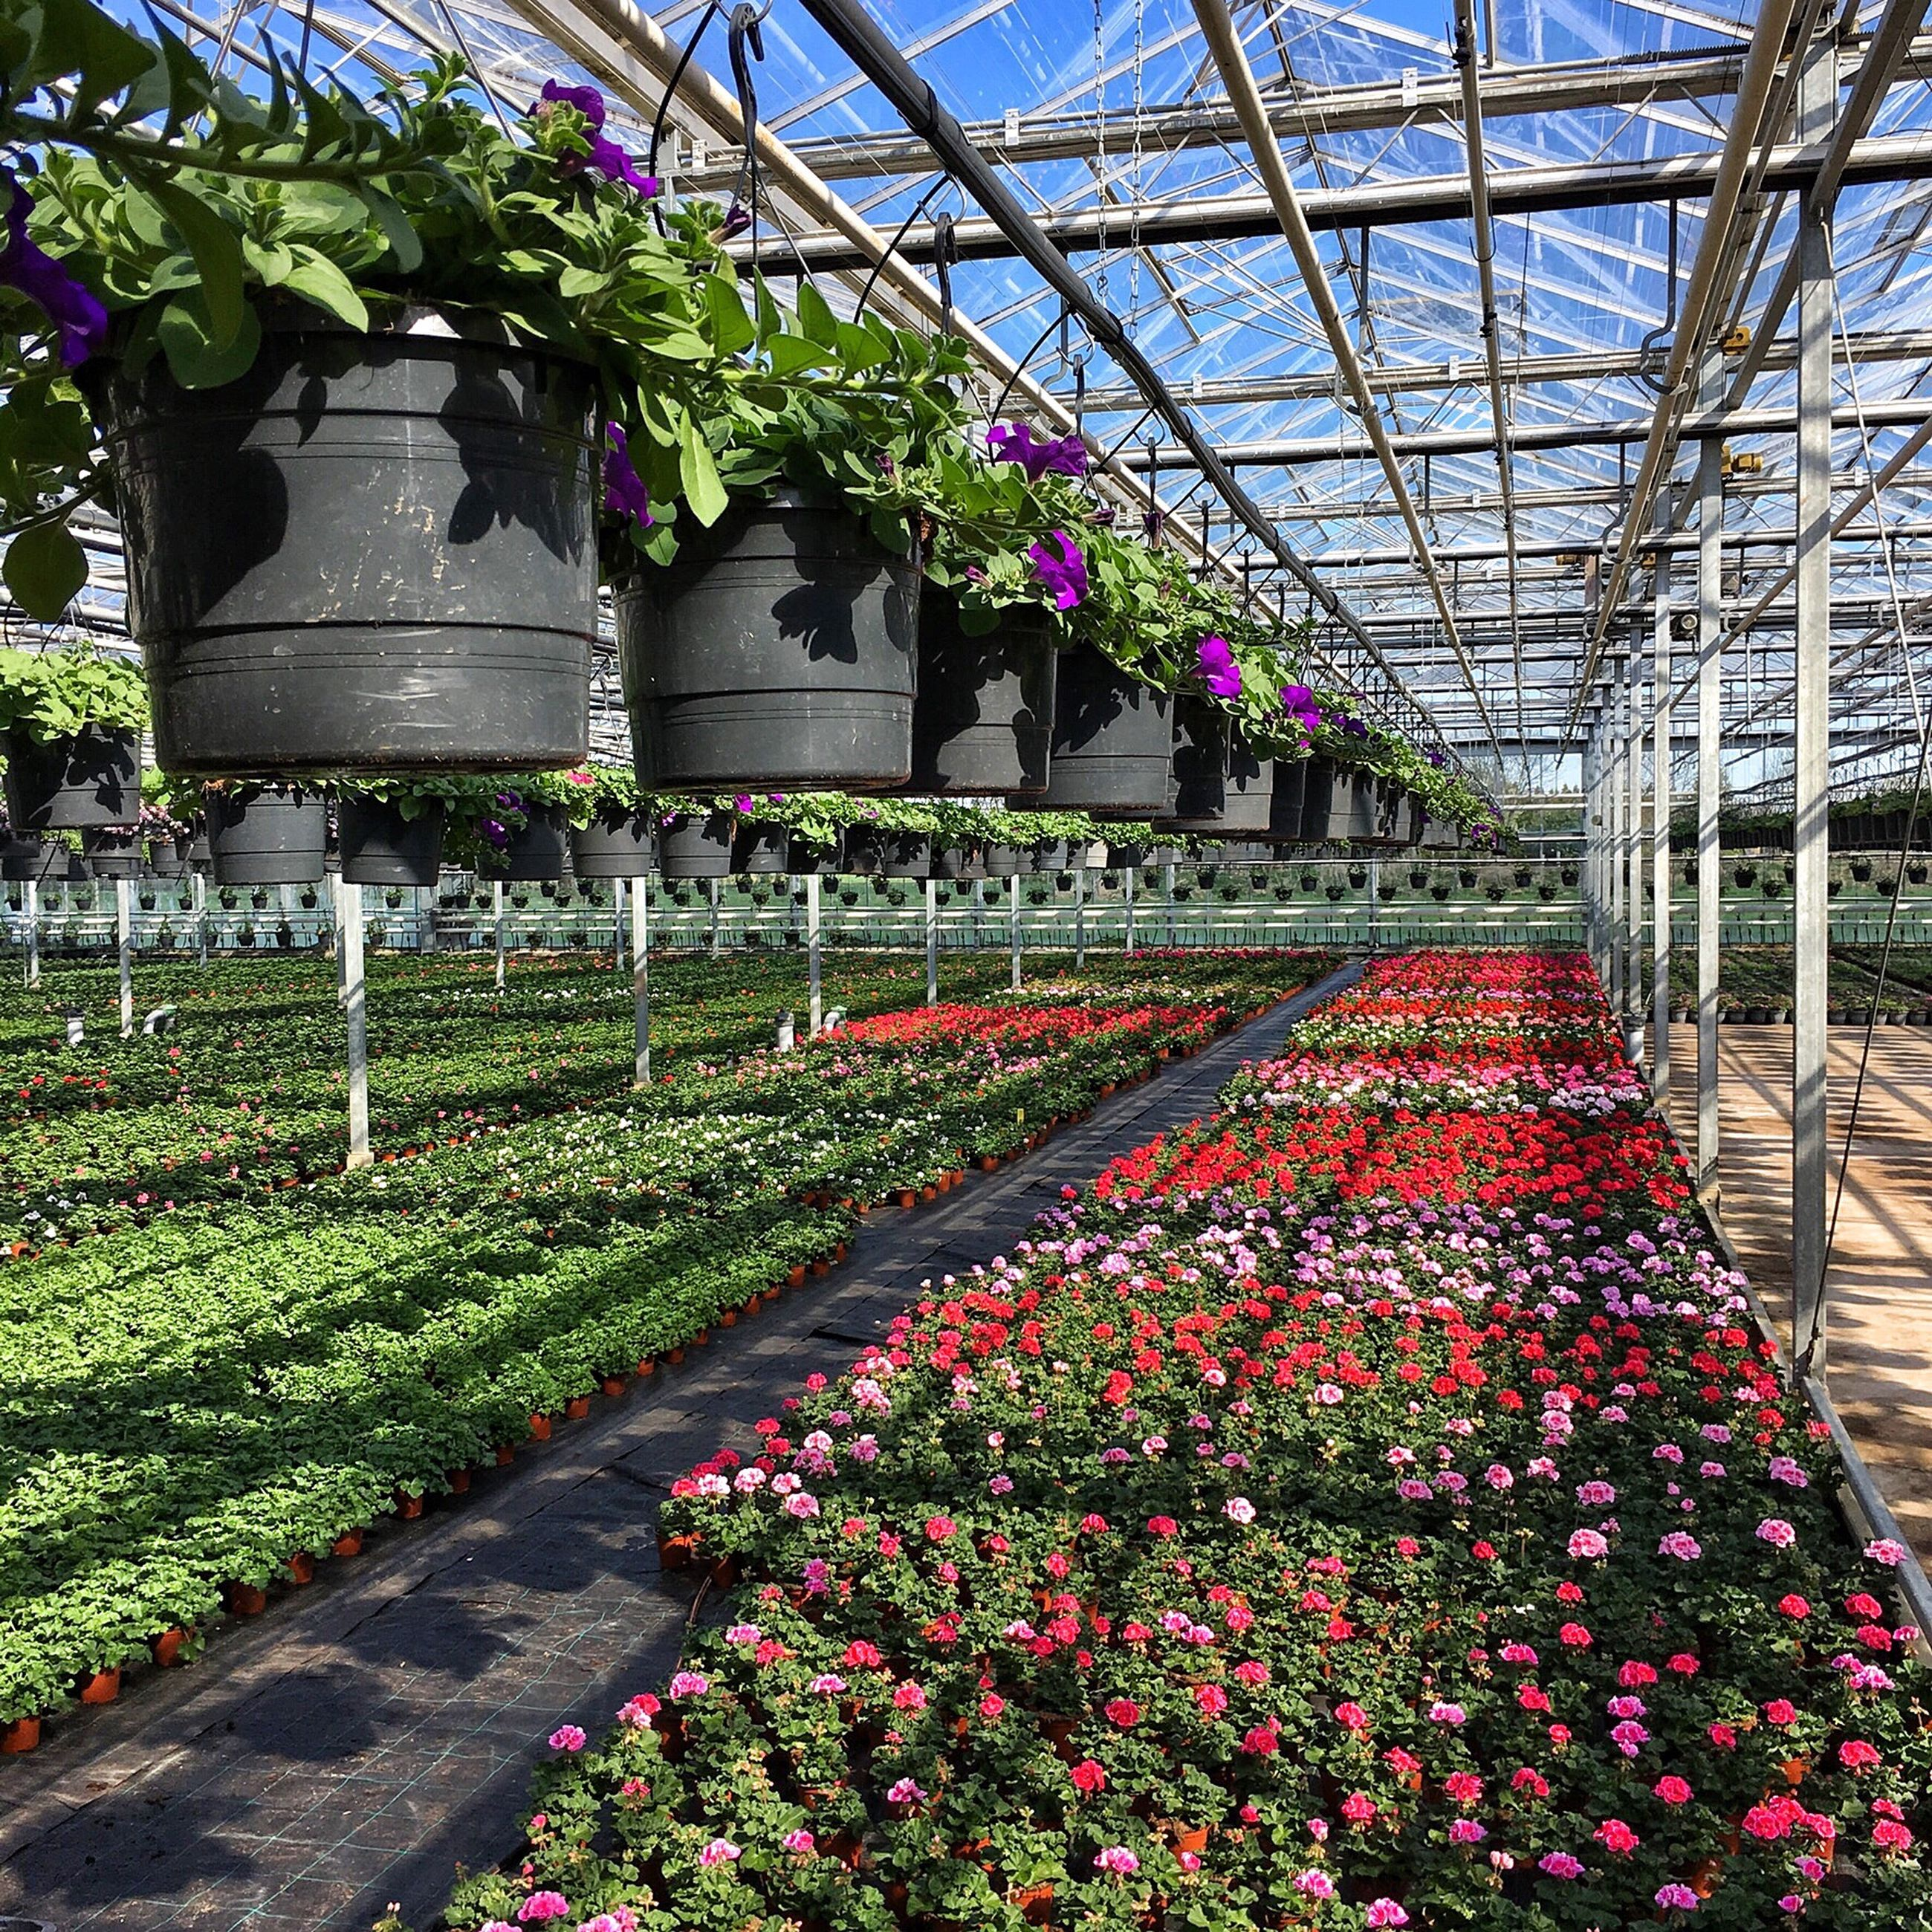 flower, plant, growth, nature, blossom, beauty in nature, greenhouse, no people, day, fragility, freshness, outdoors, botanical garden